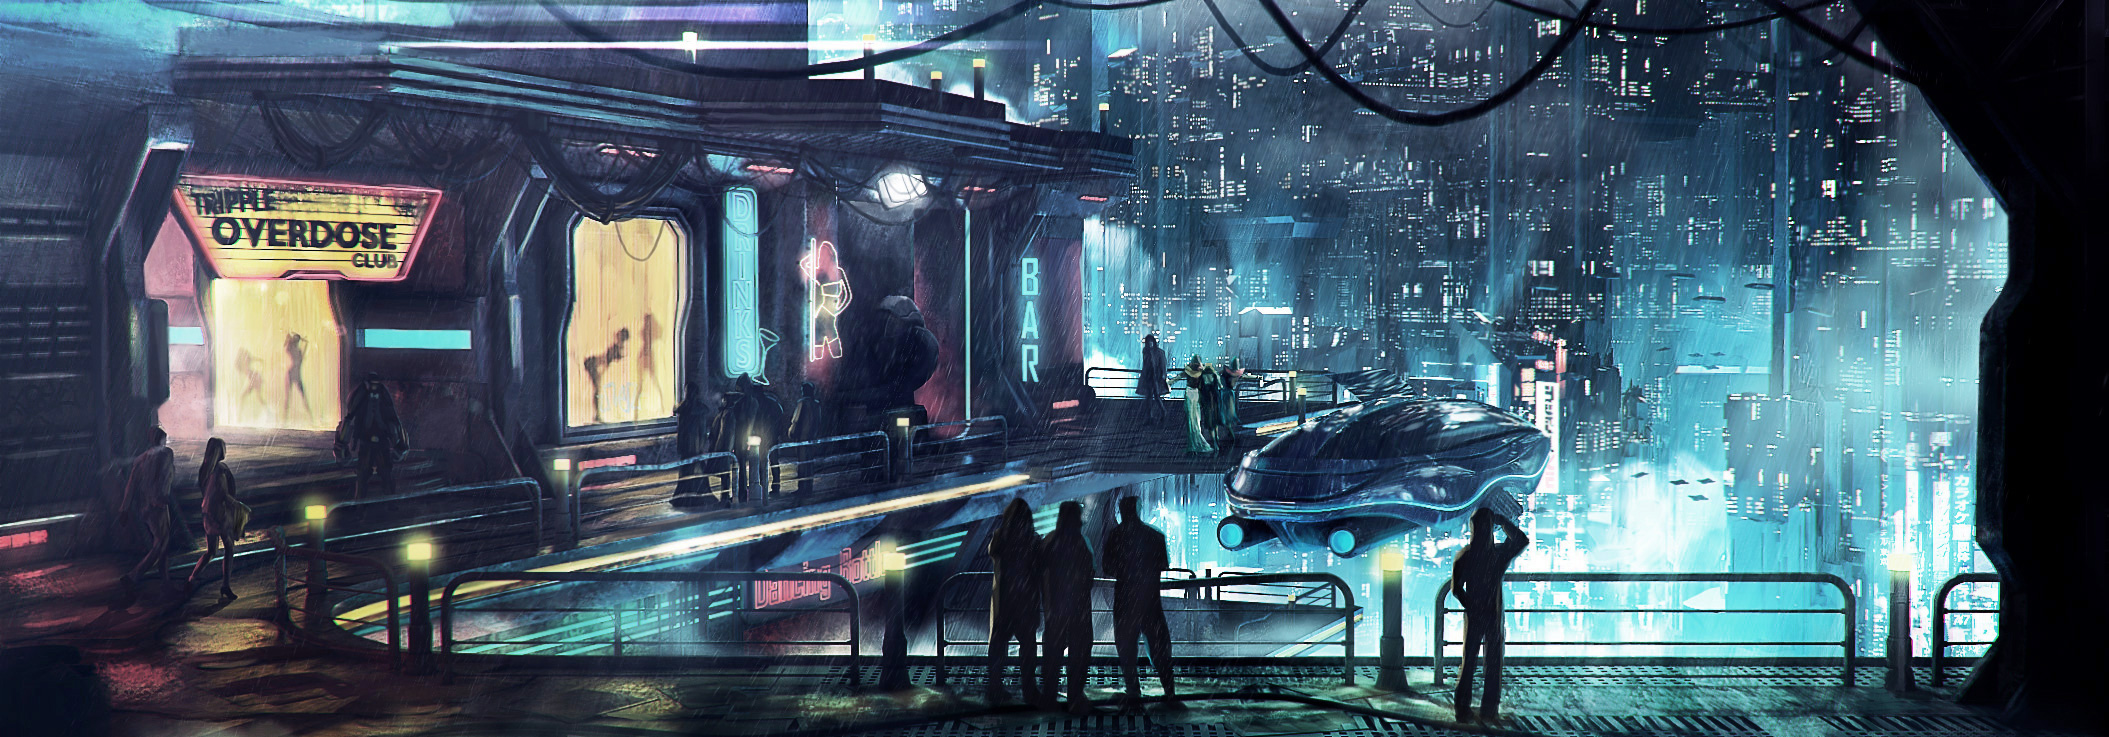 Cyberpunk district by macfixed d7jz0f3